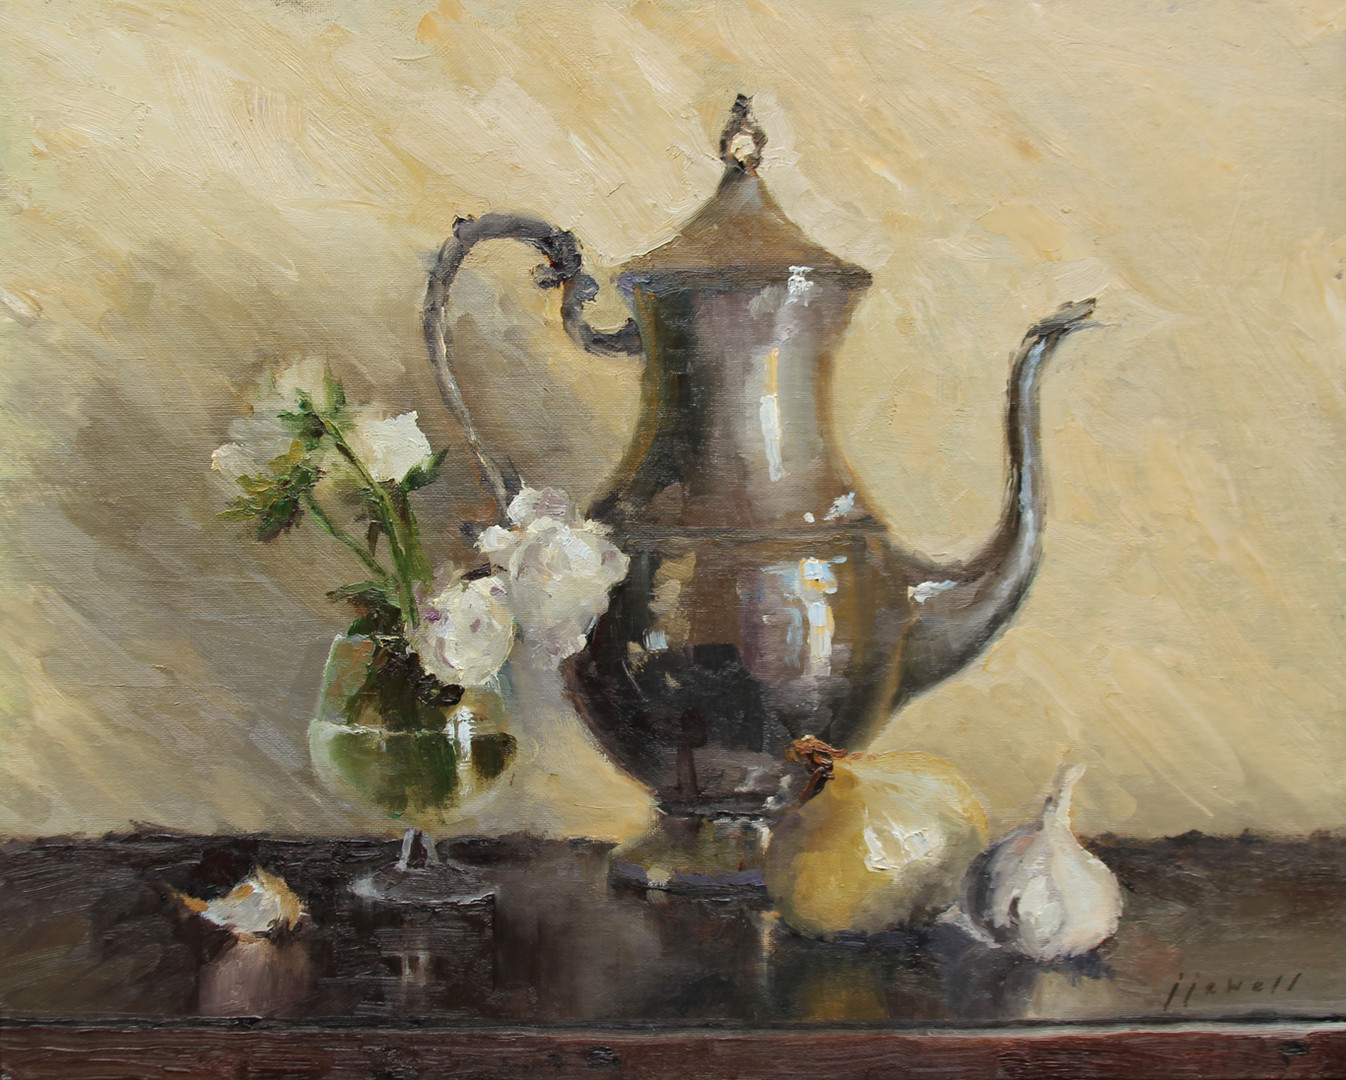 Still Life with Pewter Pot